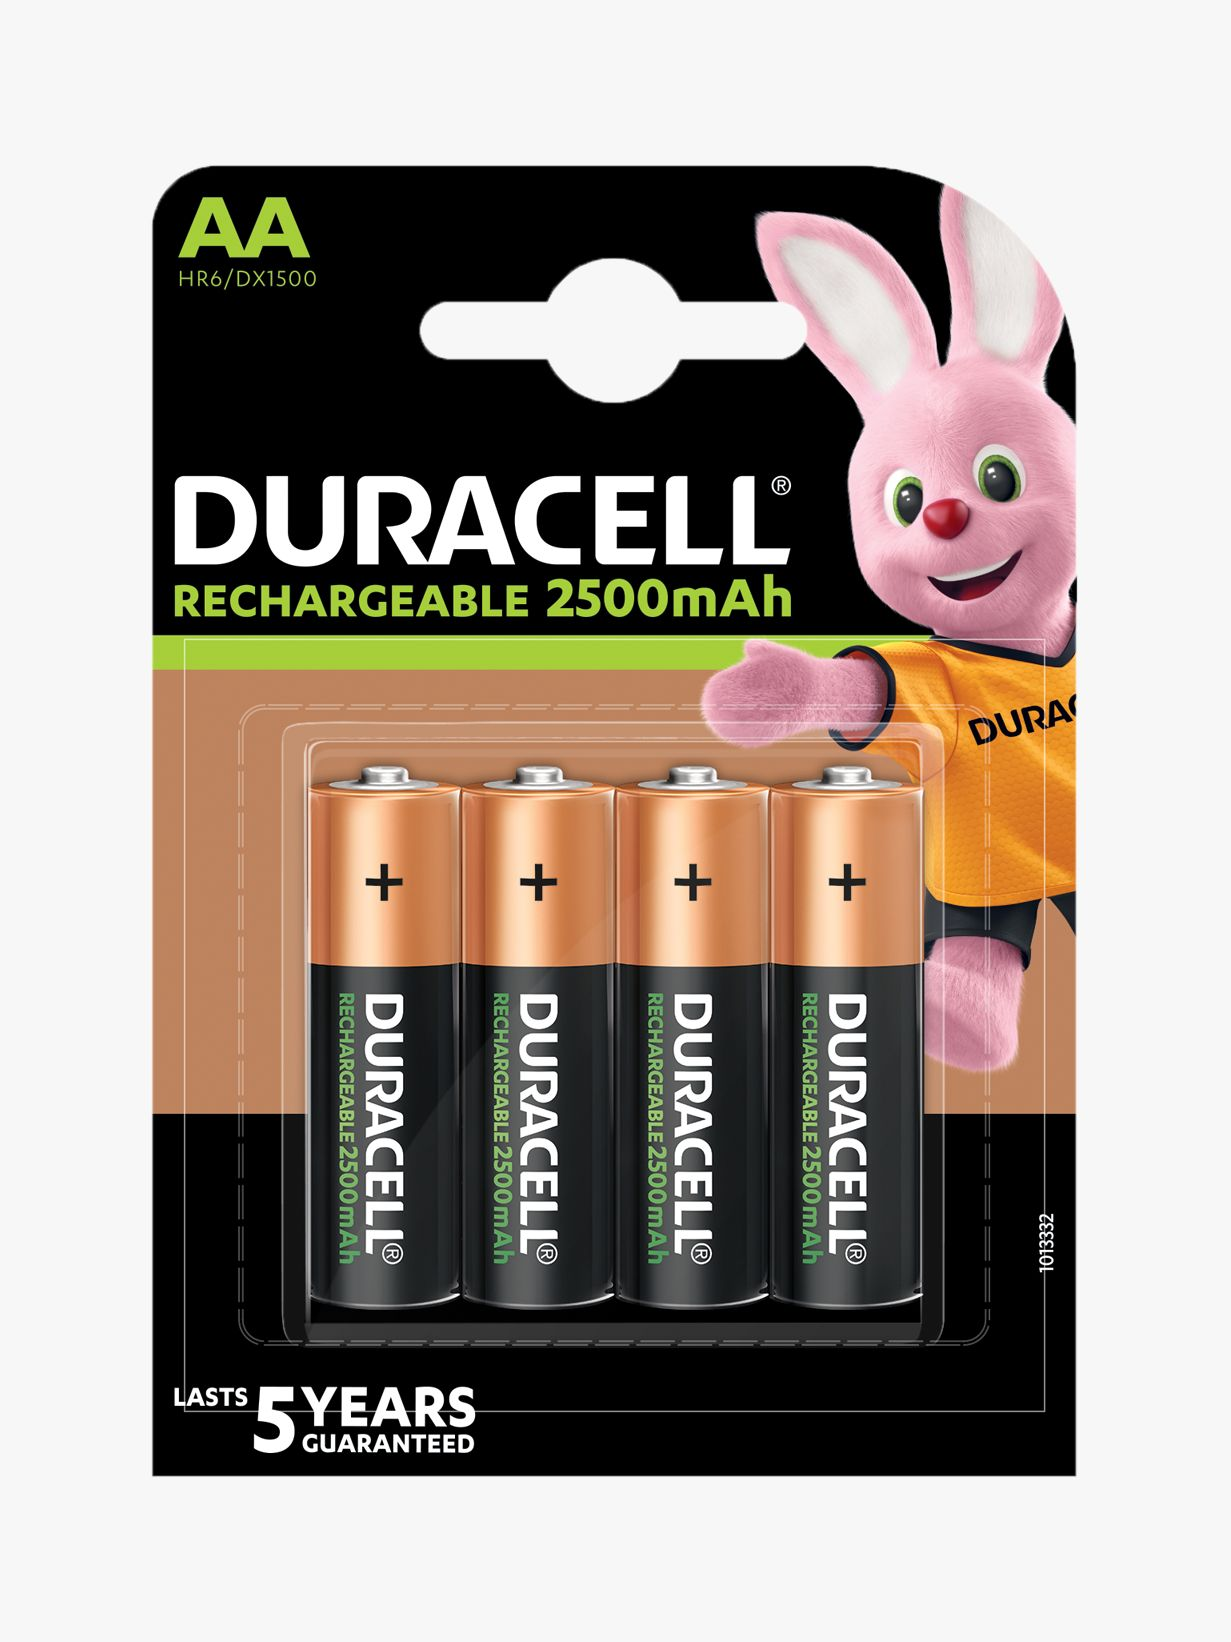 Duracell Duracell Ultra Rechargeable AA Batteries, Pack of 4